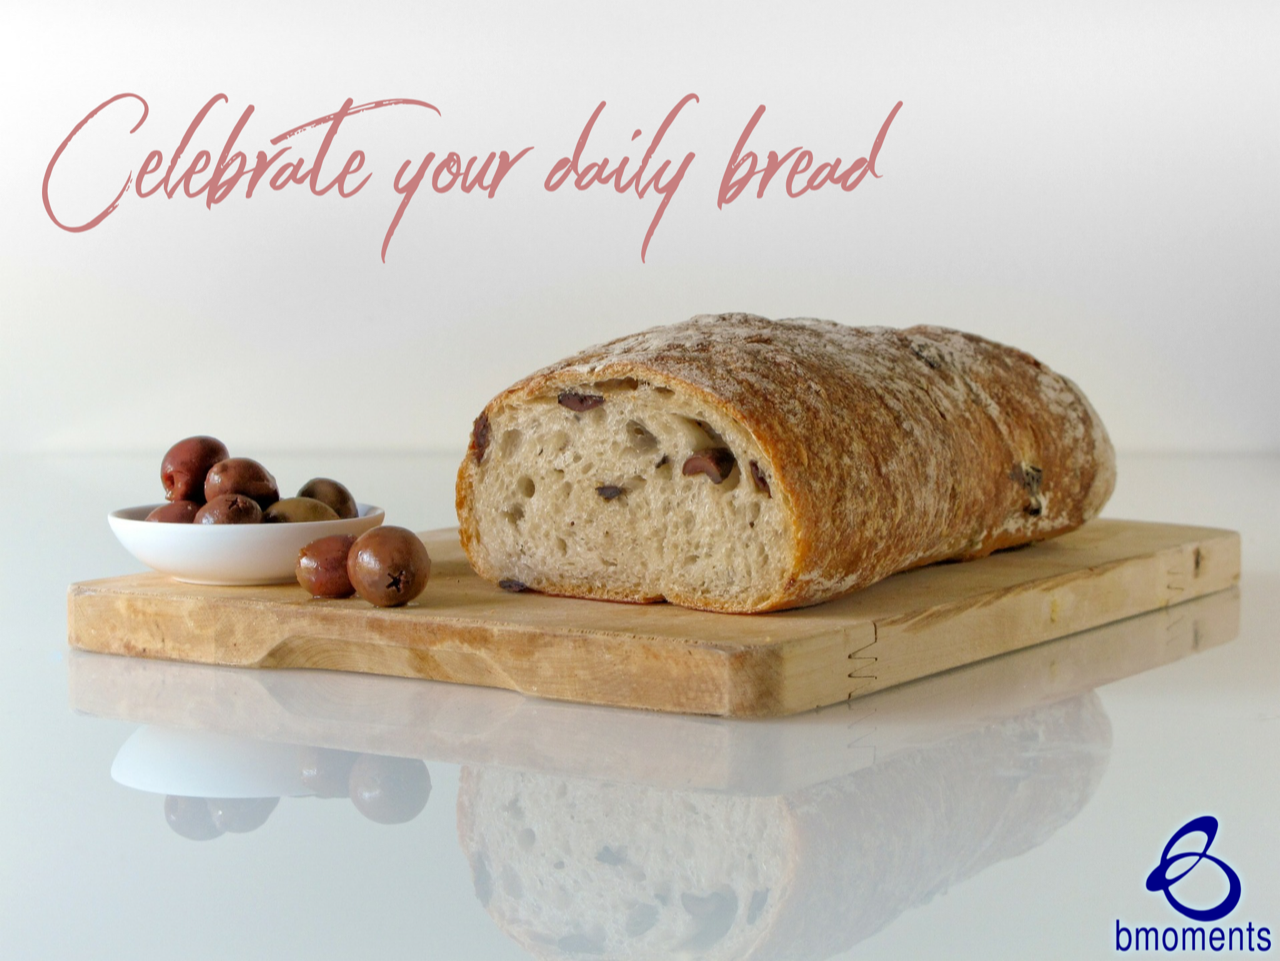 As God Prunes You, Celebrate Your Daily Bread